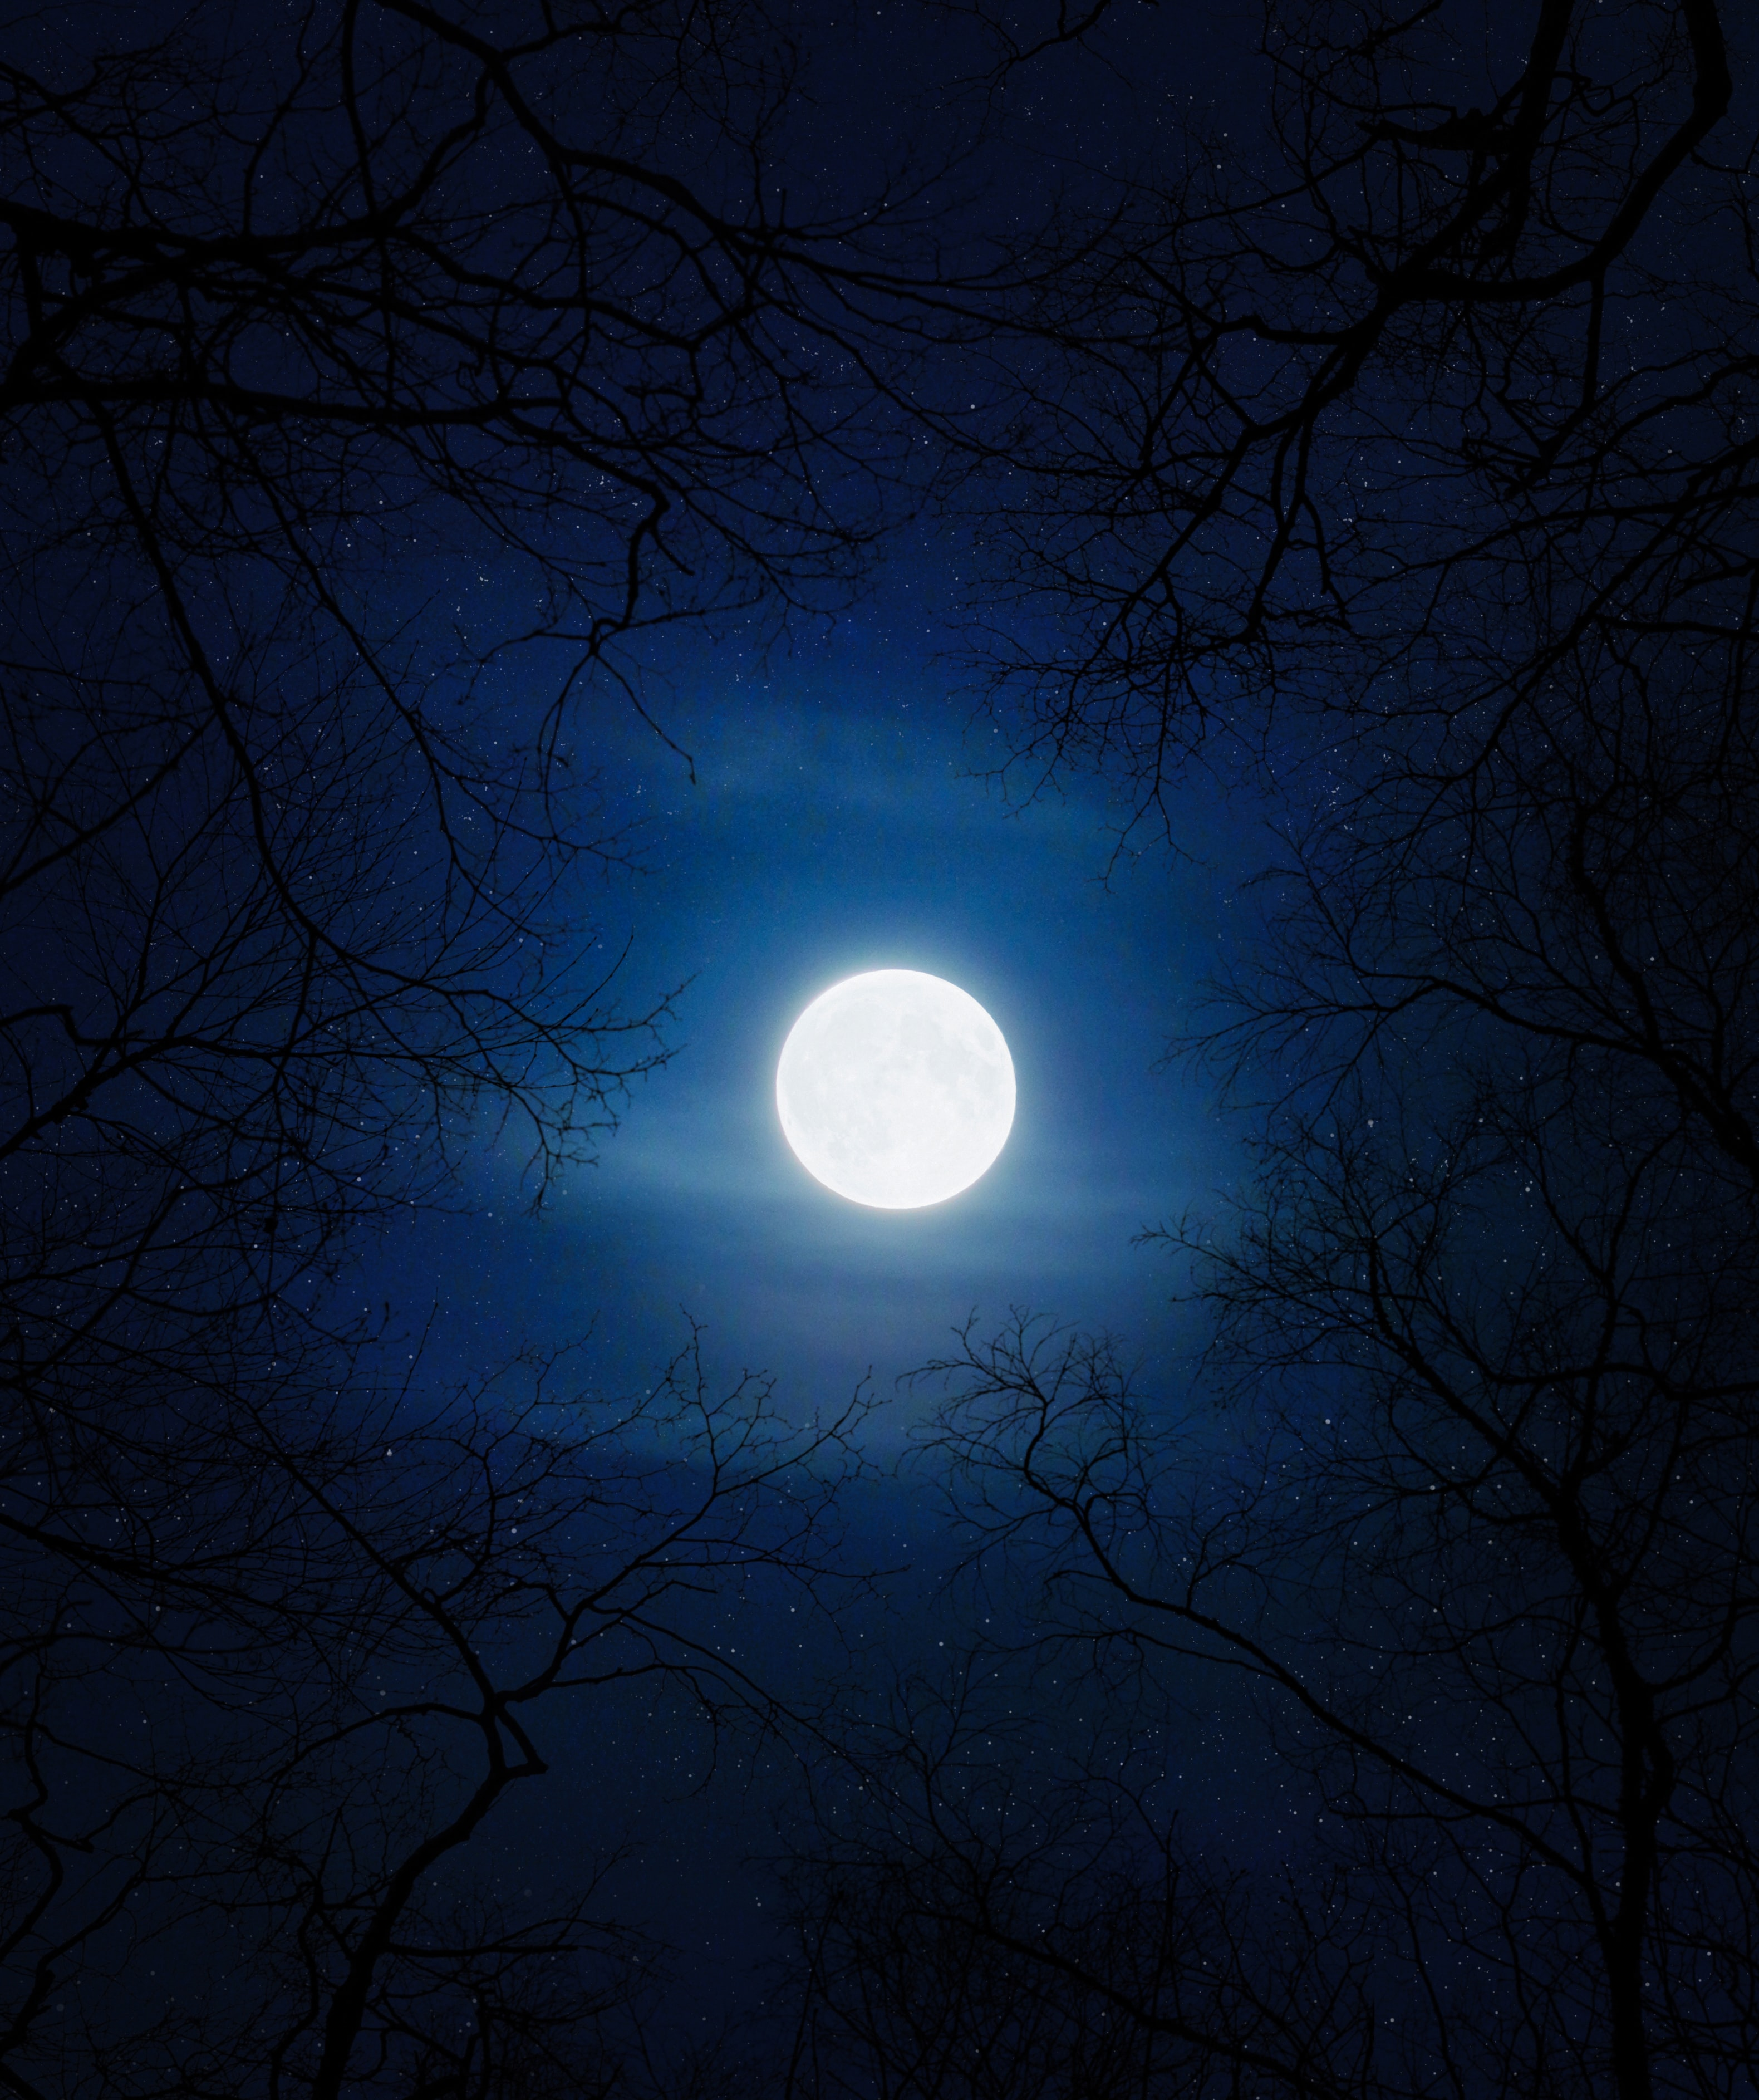 Moon 4k Wallpaper Night Cold Trees Blue Sky Full Moon Nature 1093